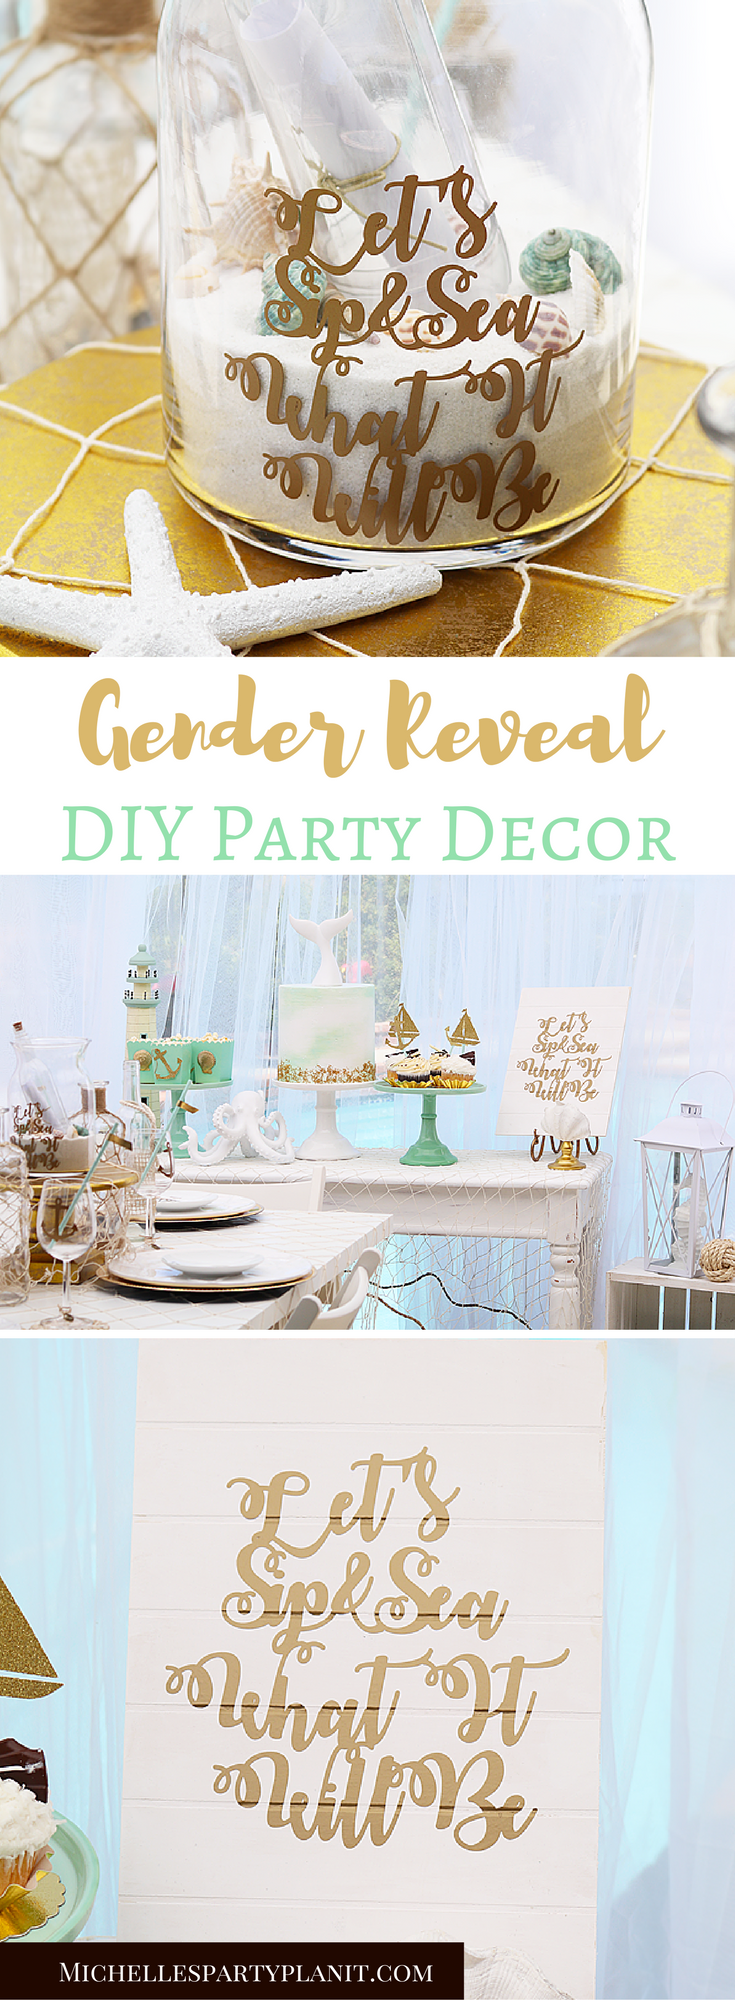 Let S Sip Sea What It Will Be Gender Reveal Party Decor Party With Cricut Michelle S Party Plan It Gender Reveal Party Decorations Gender Reveal Party Theme Gender Reveal Themes